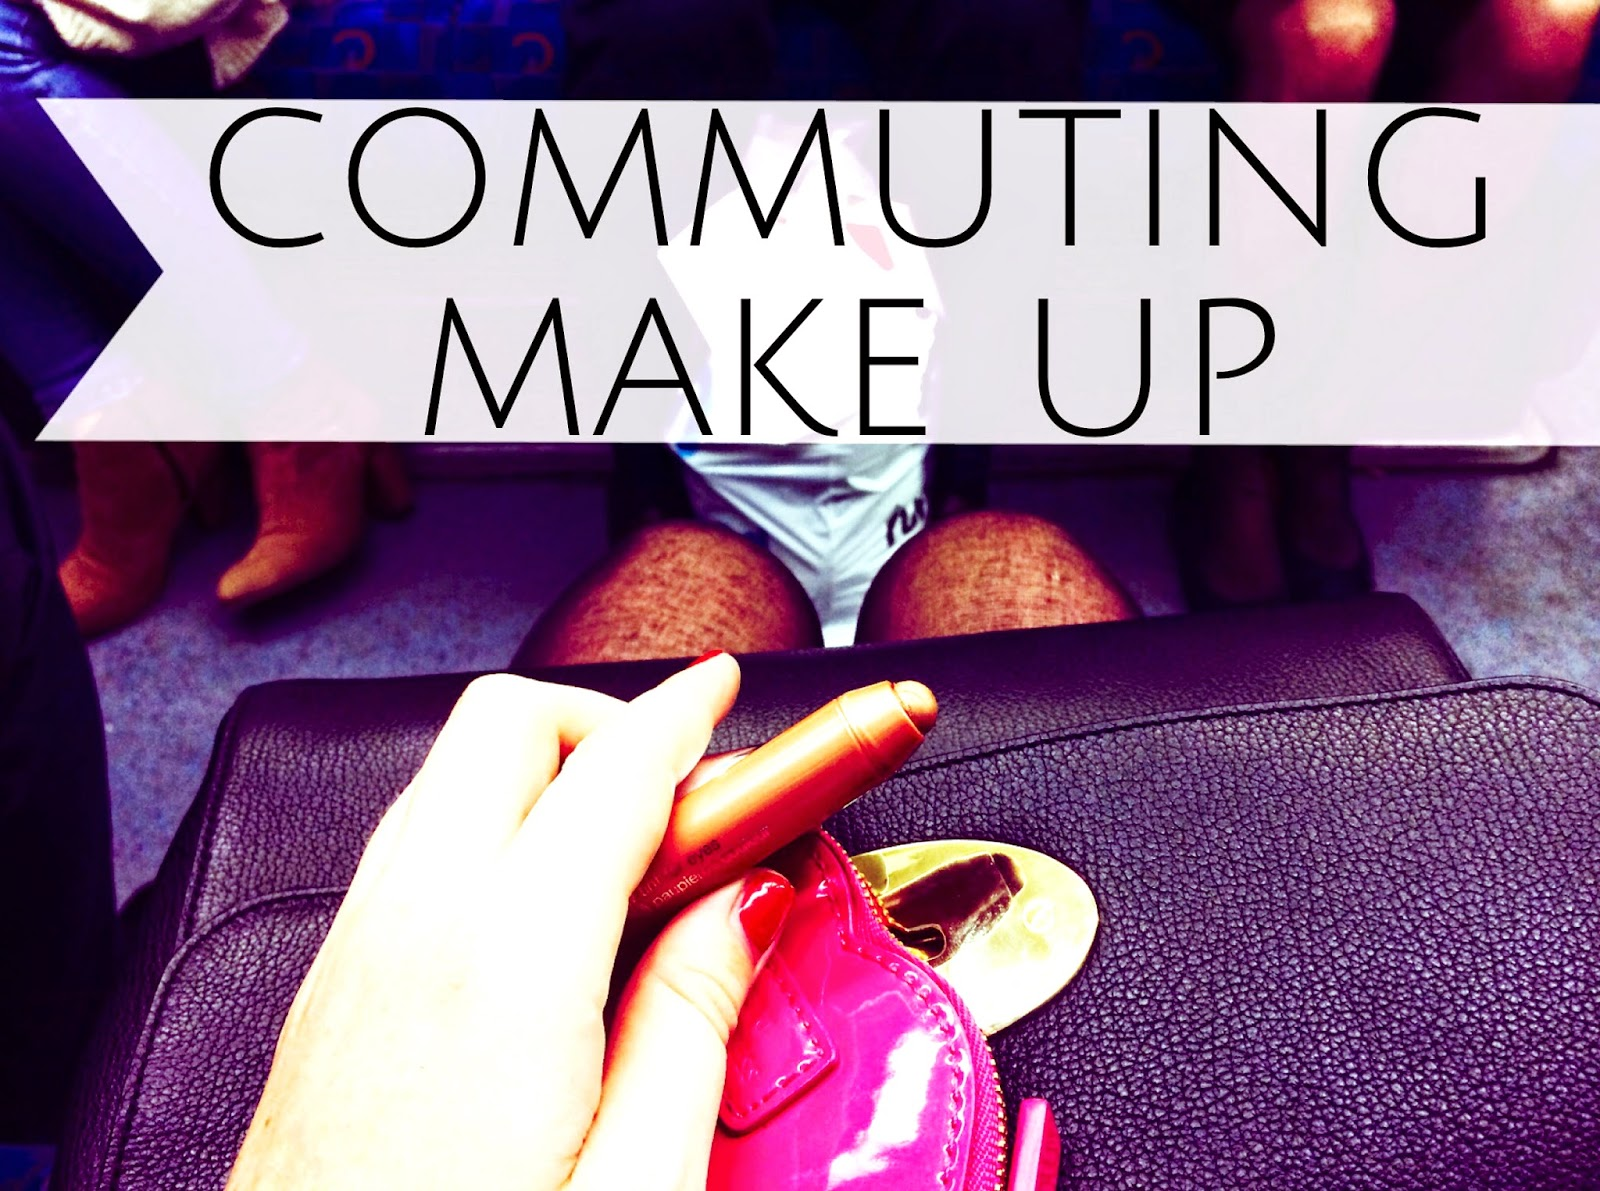 Is it ok to do your makeup on the train/ commute